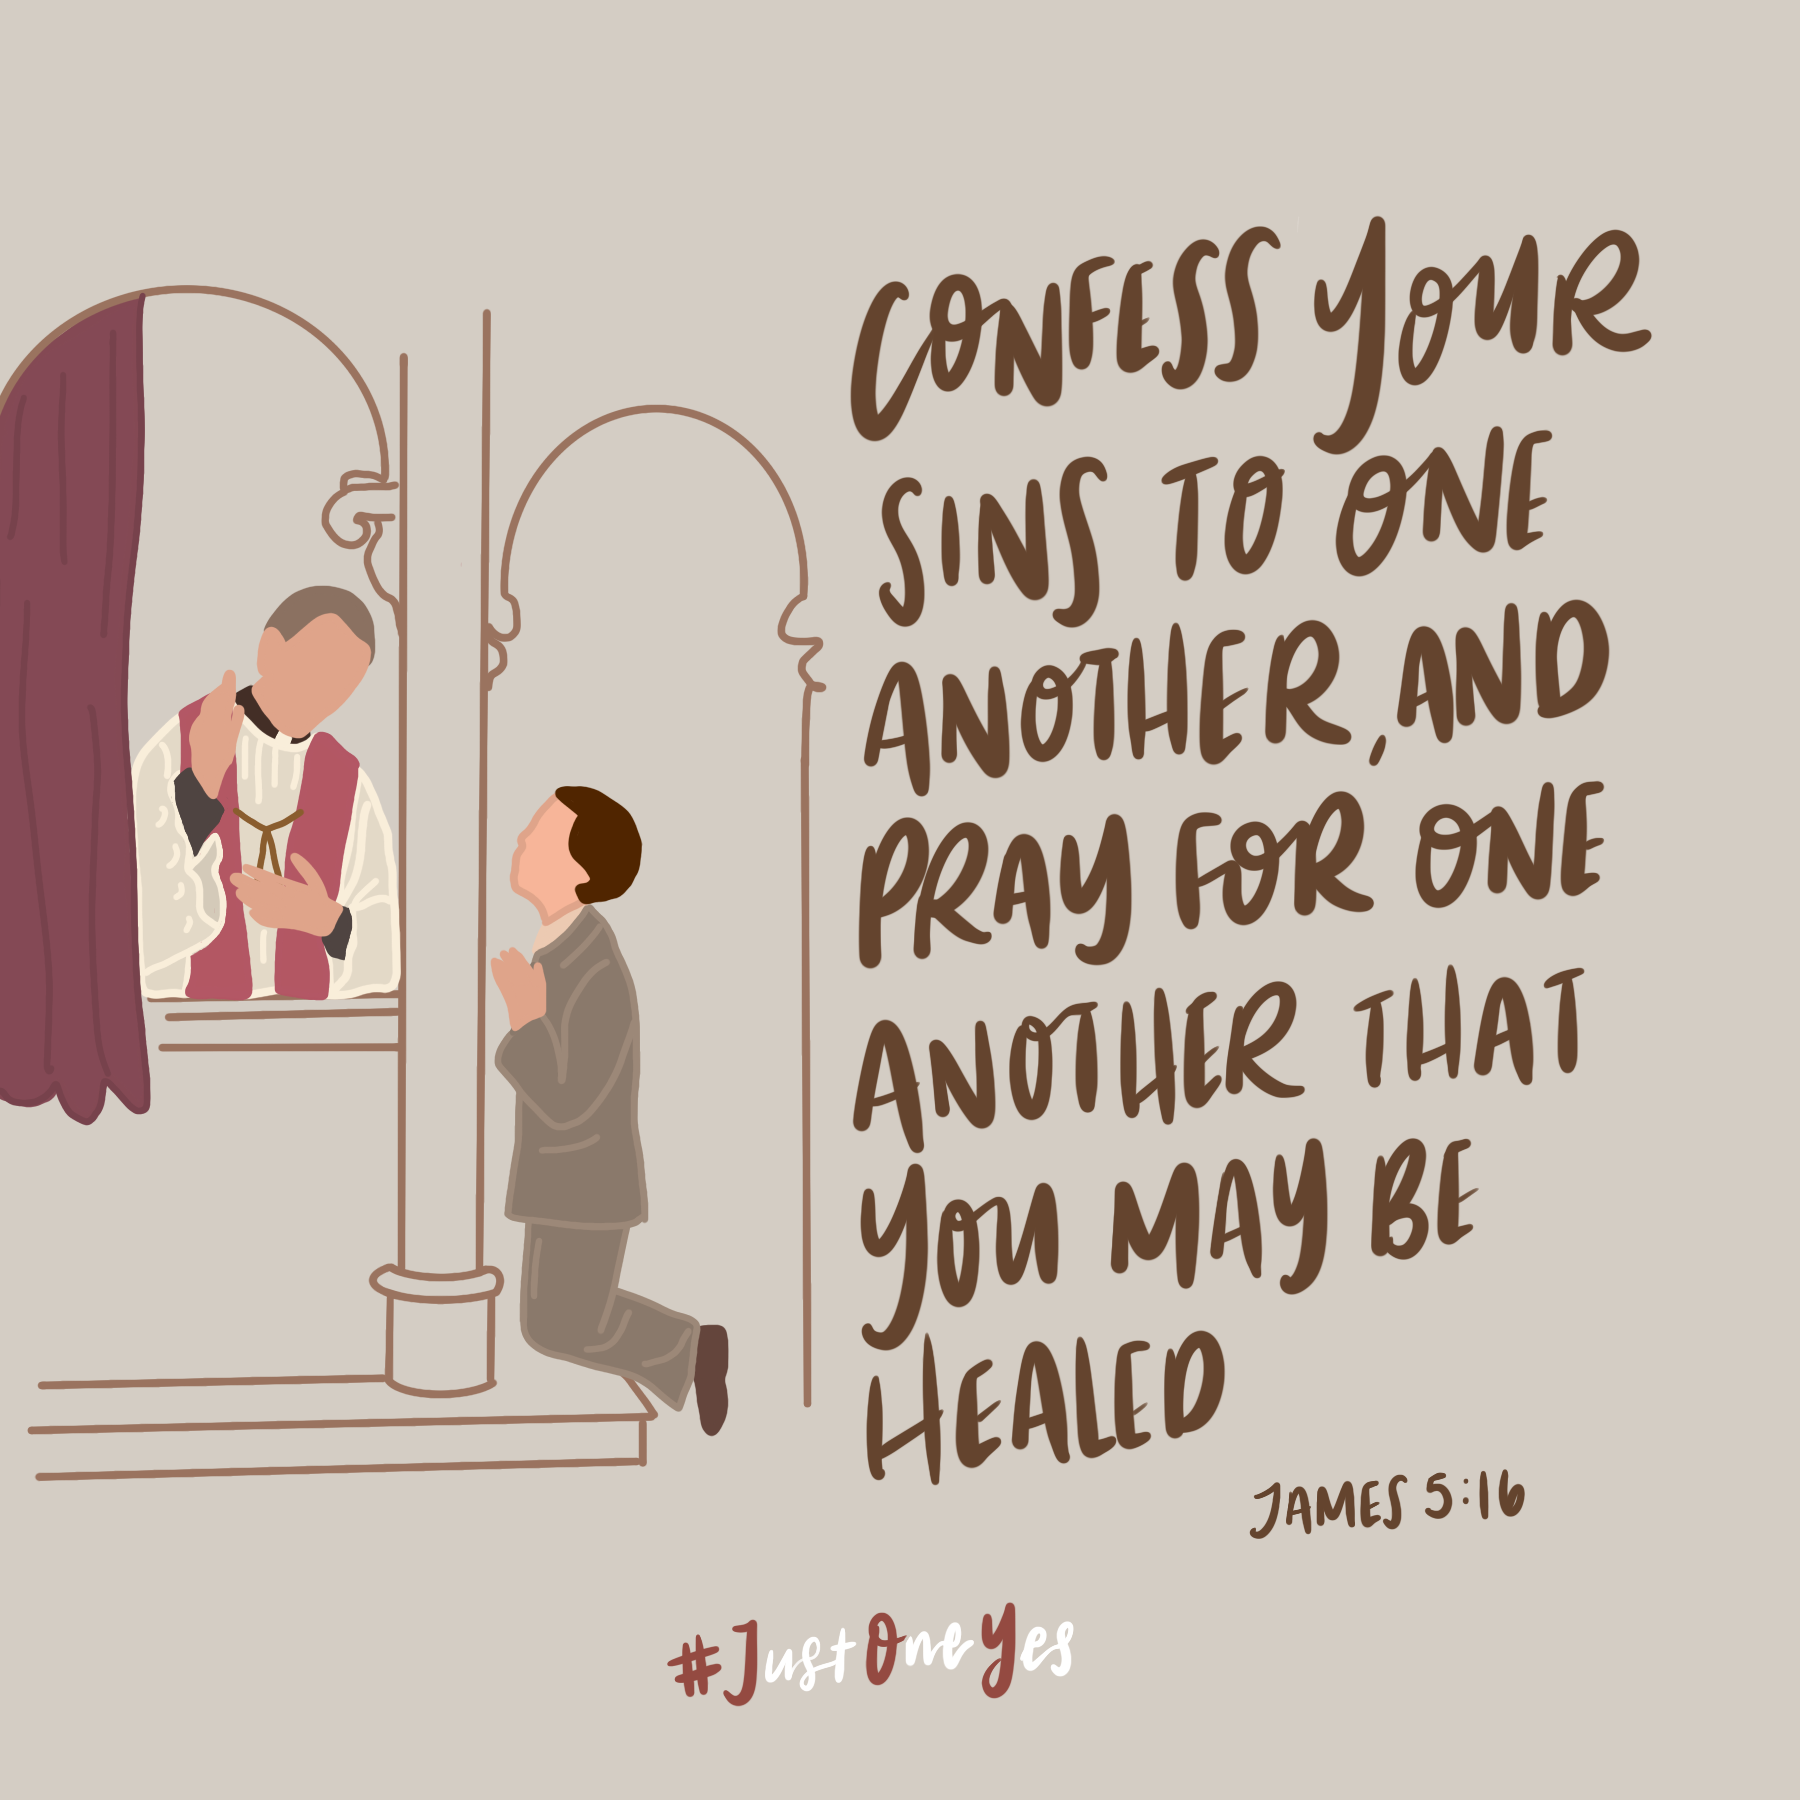 Just One Yes Confess Your Sins